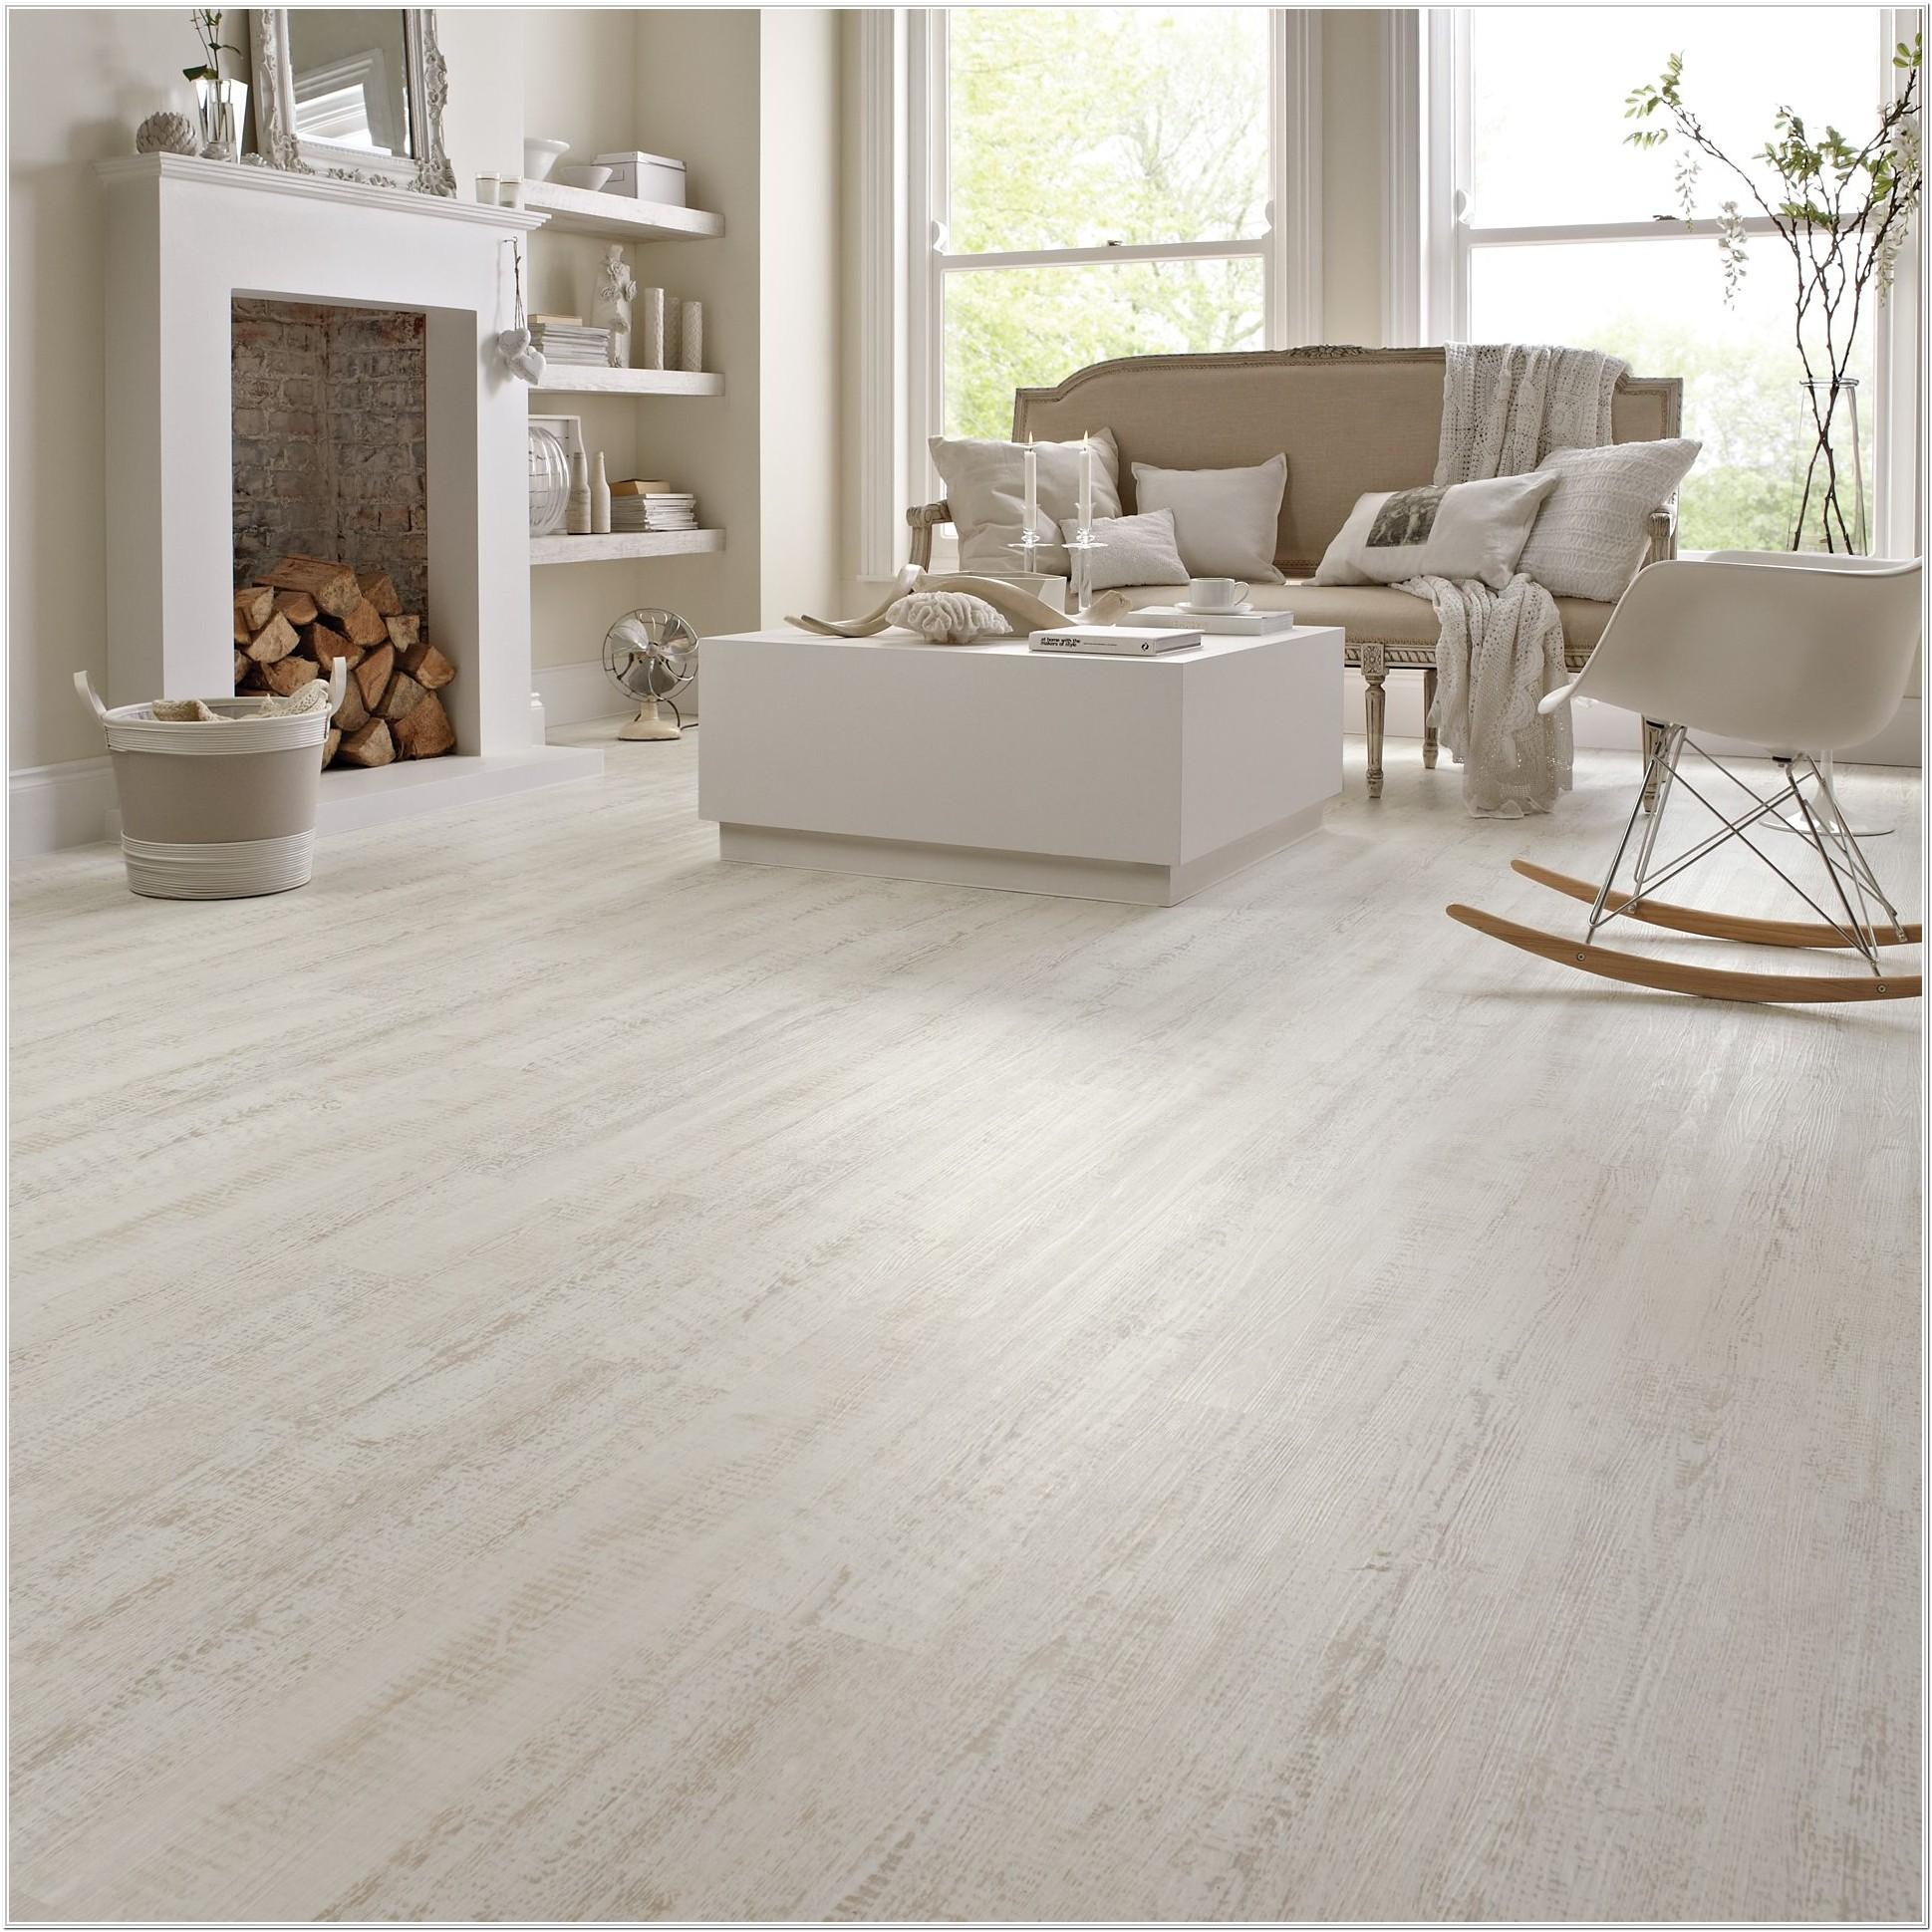 Living Room Vinyl Flooring Tiles